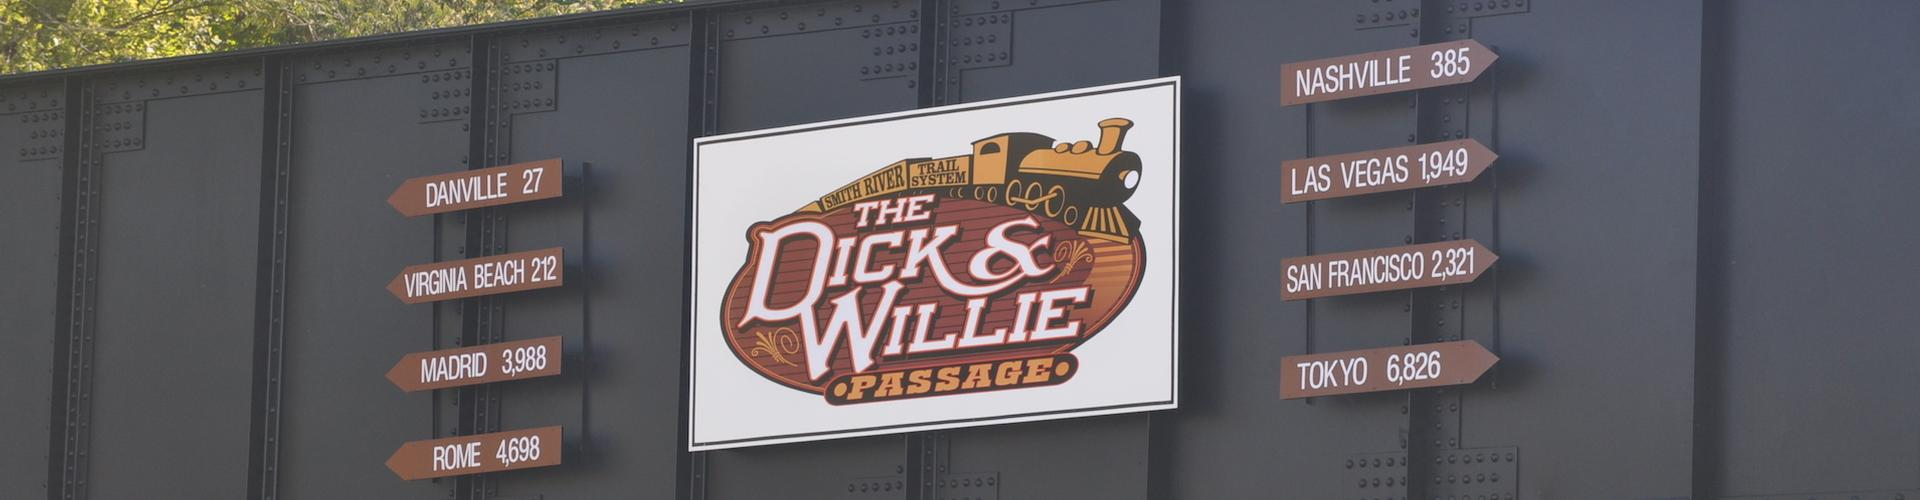 Dick and Willie Trail Sign